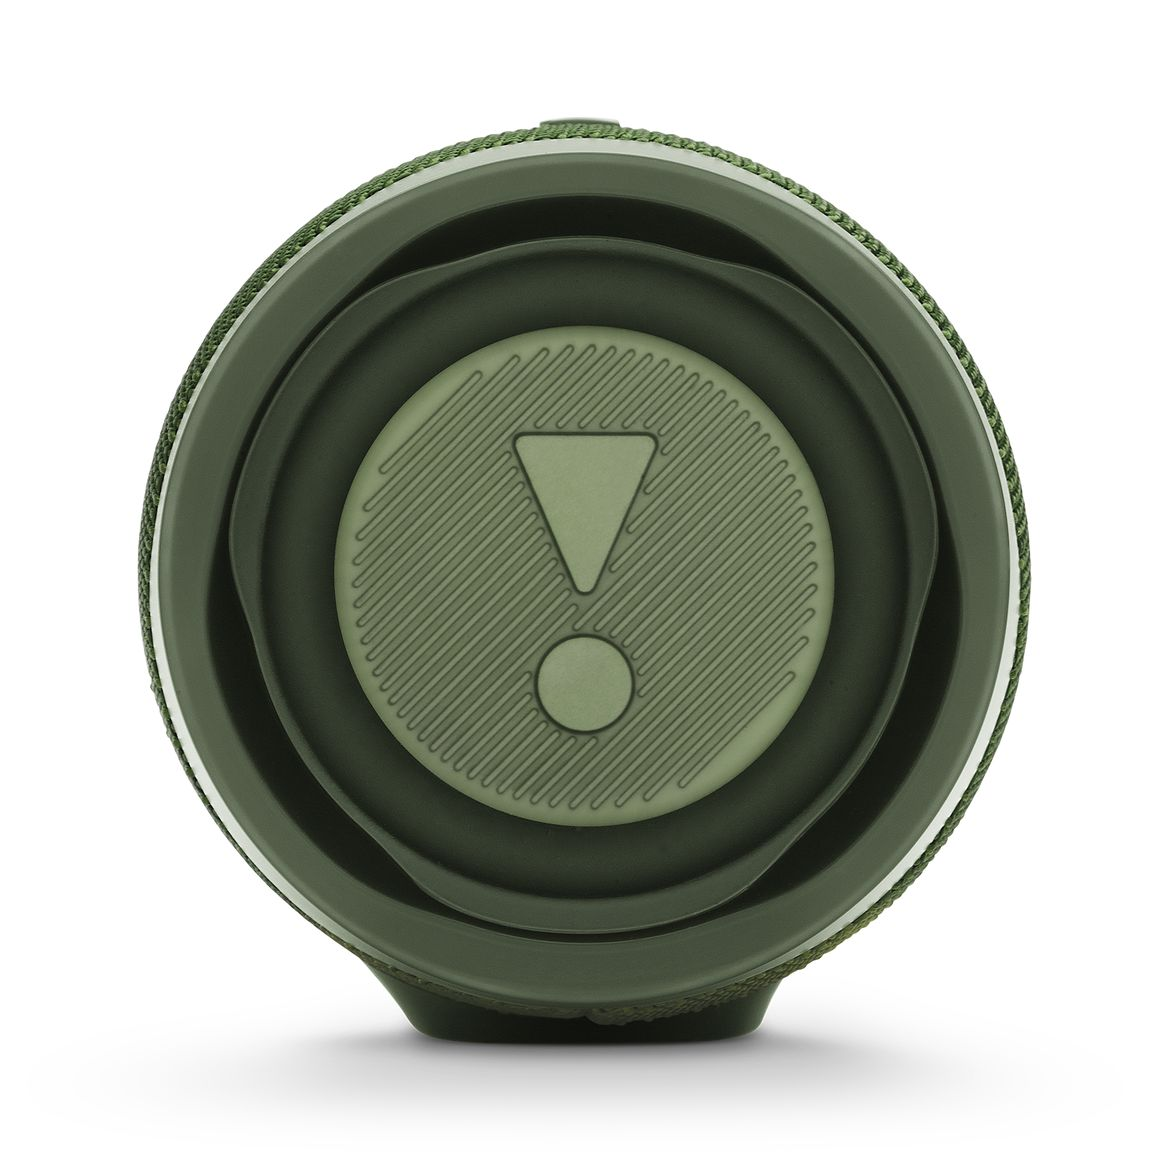 JBL_Charge4_Side2_ForestGreen-1605x1605px